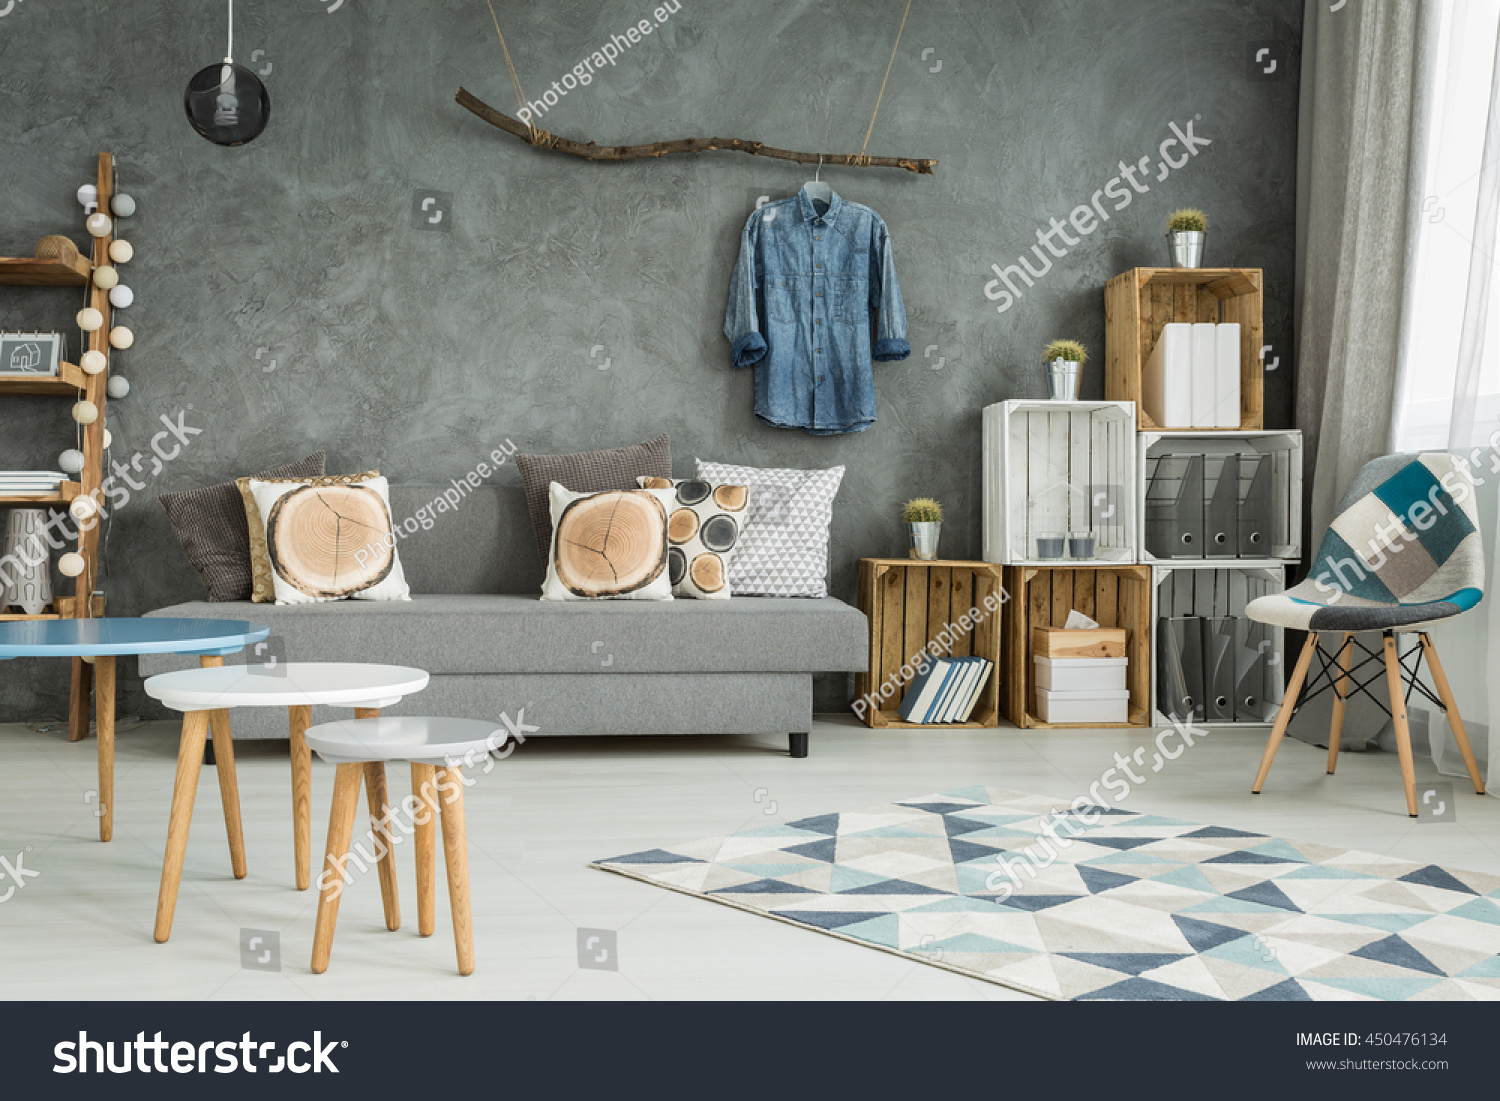 Grey Living Room In New Style With DIY Furniture, Chair, Pattern Carpet,  Sofa